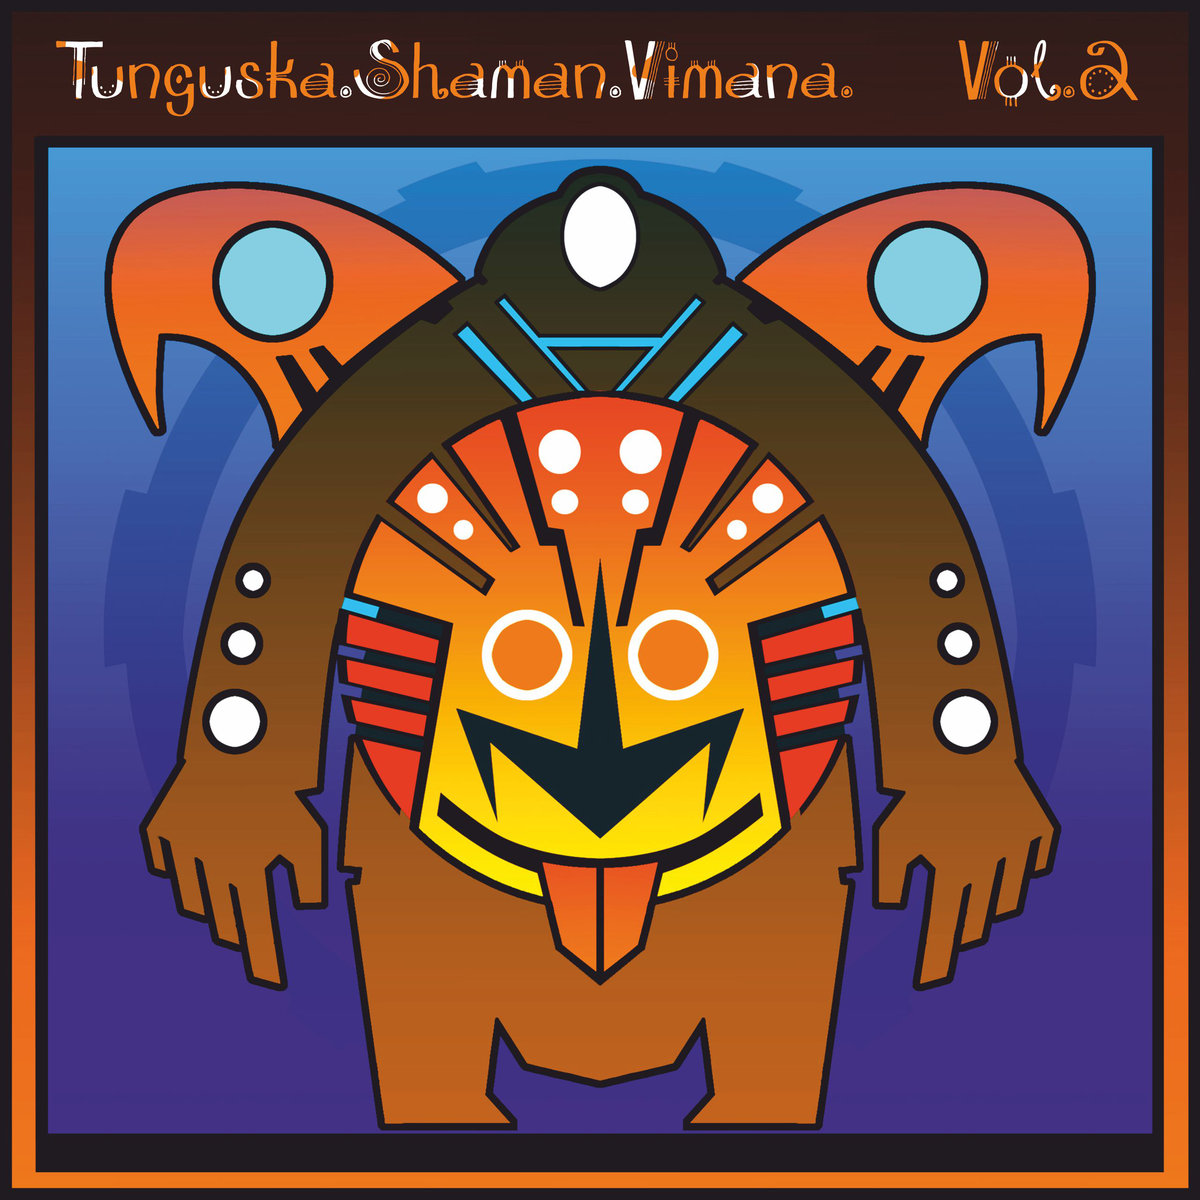 Ellipsis II - Tunguska.Shaman.Vimana. Vol.2 (artwork)